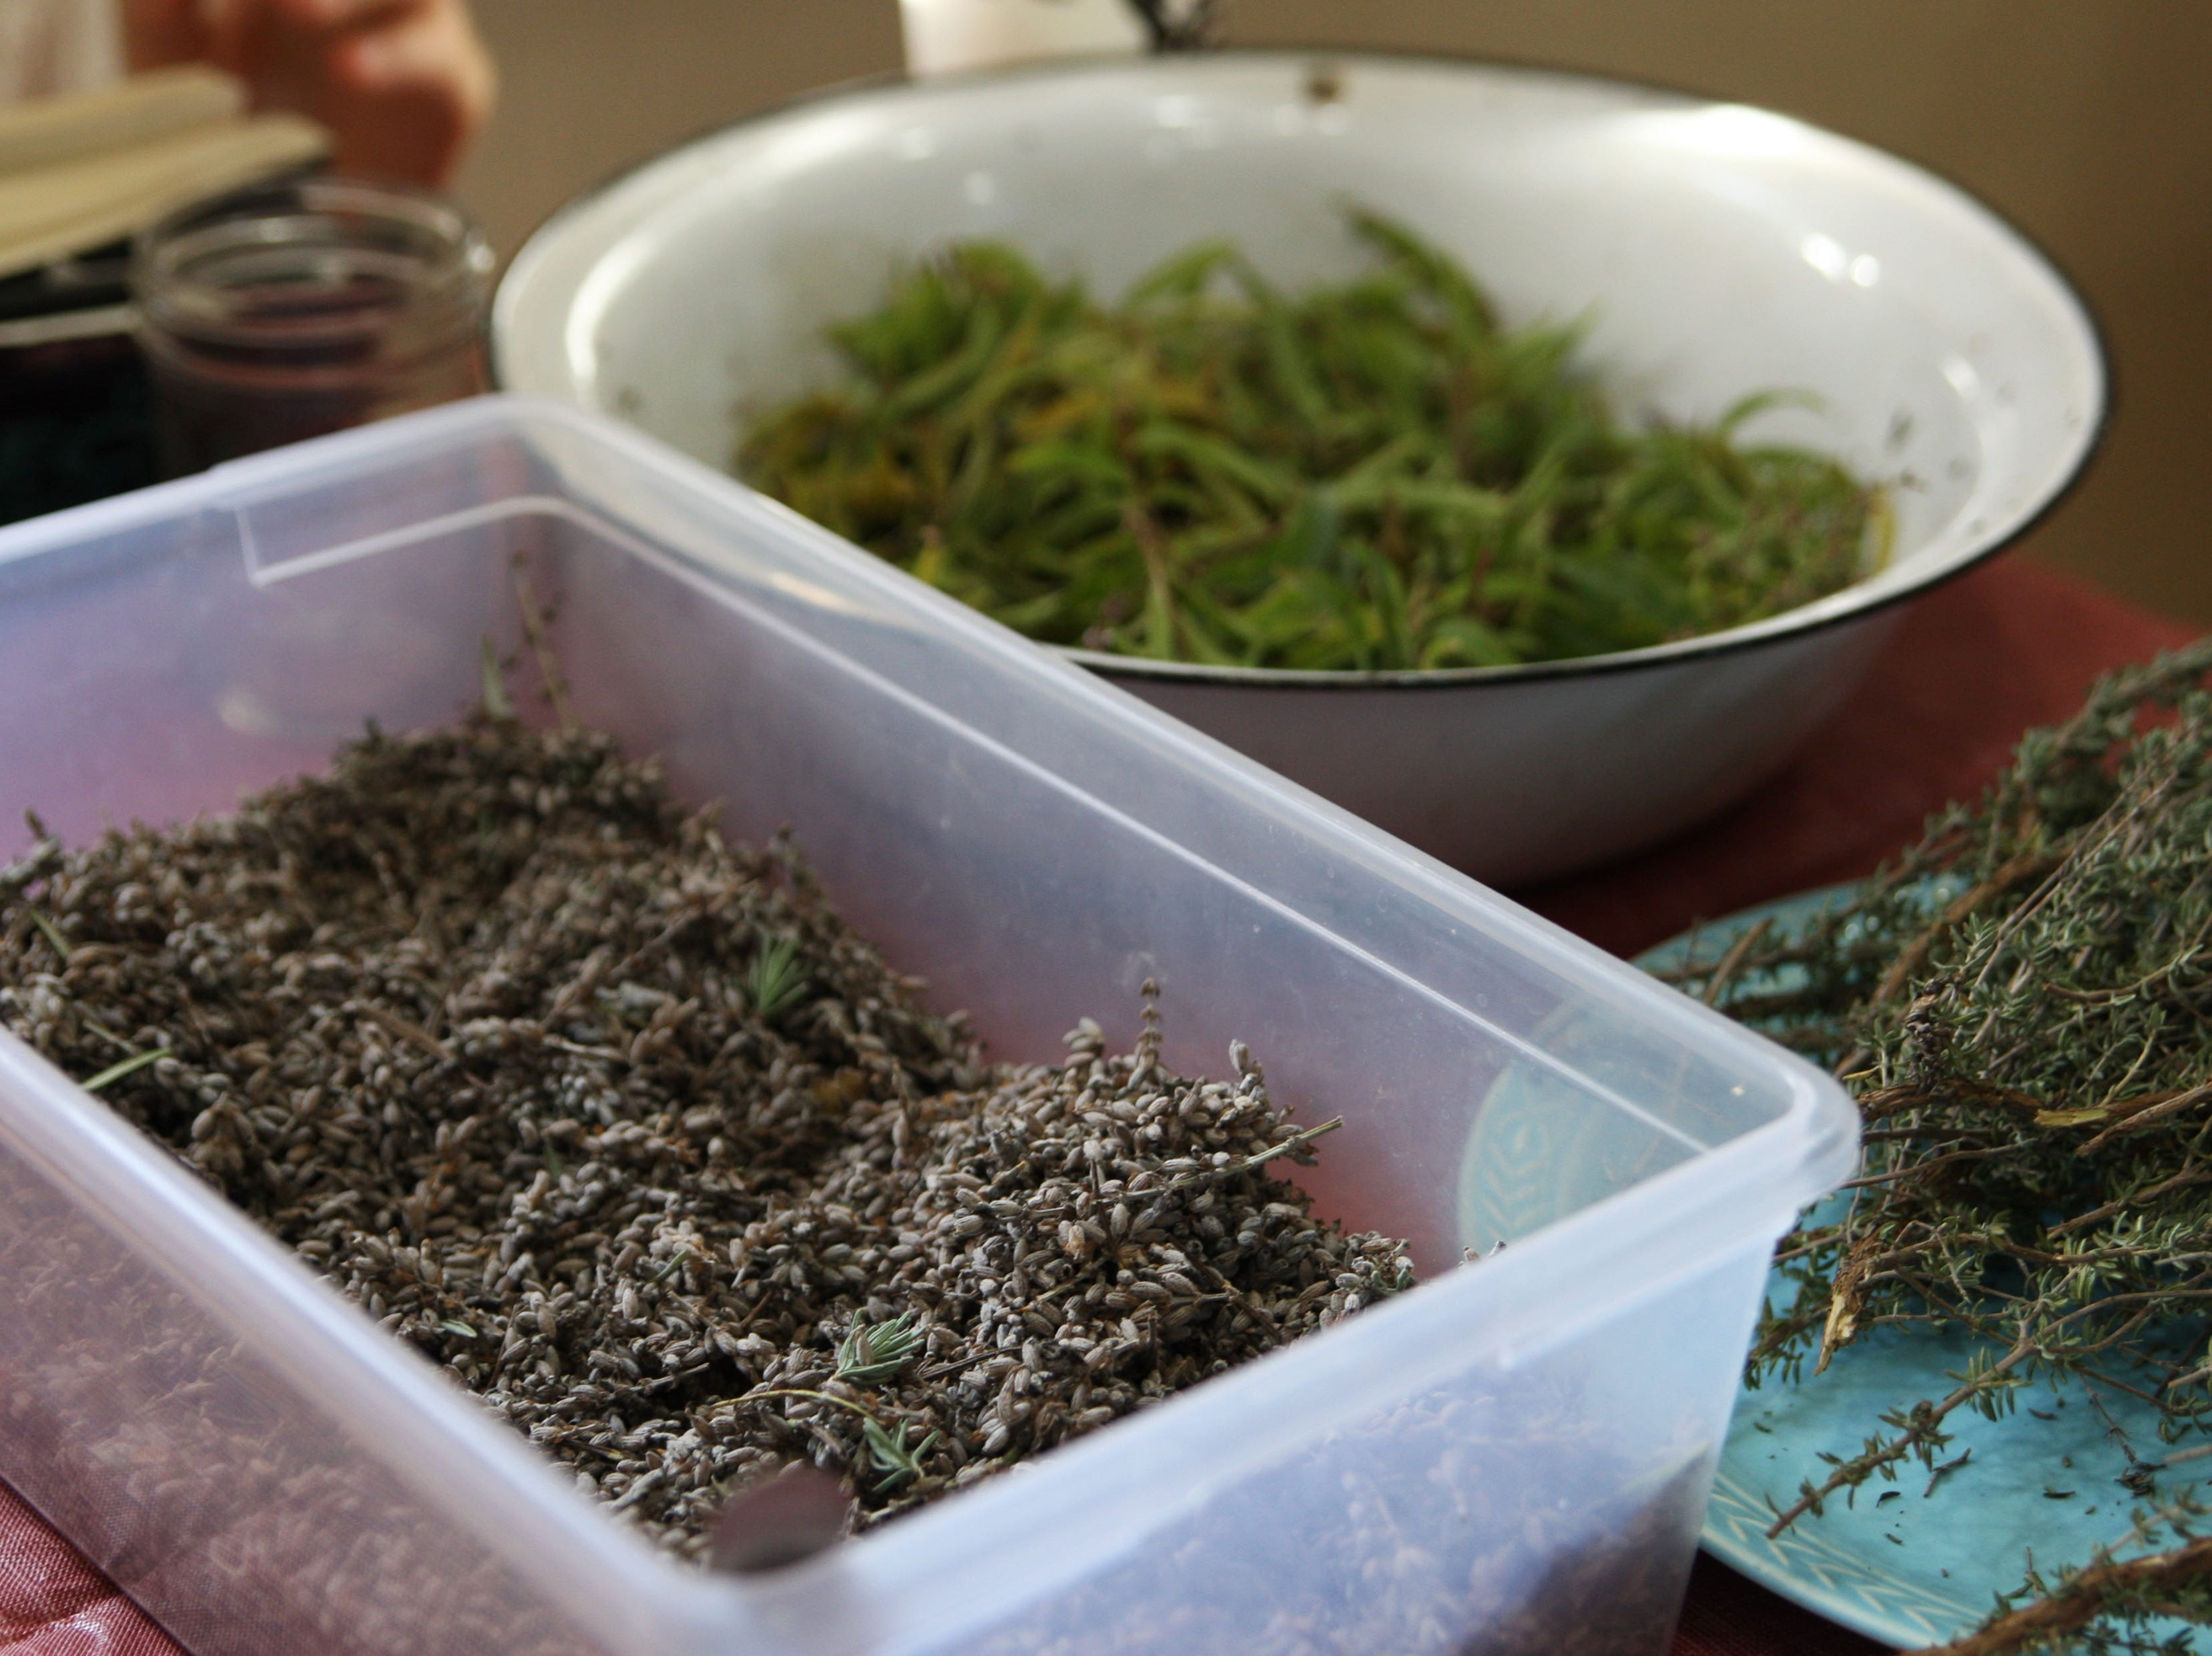 Visitors could choose between a variety of herbs, such as lavender, to make sachets in the arts and crafts corner.